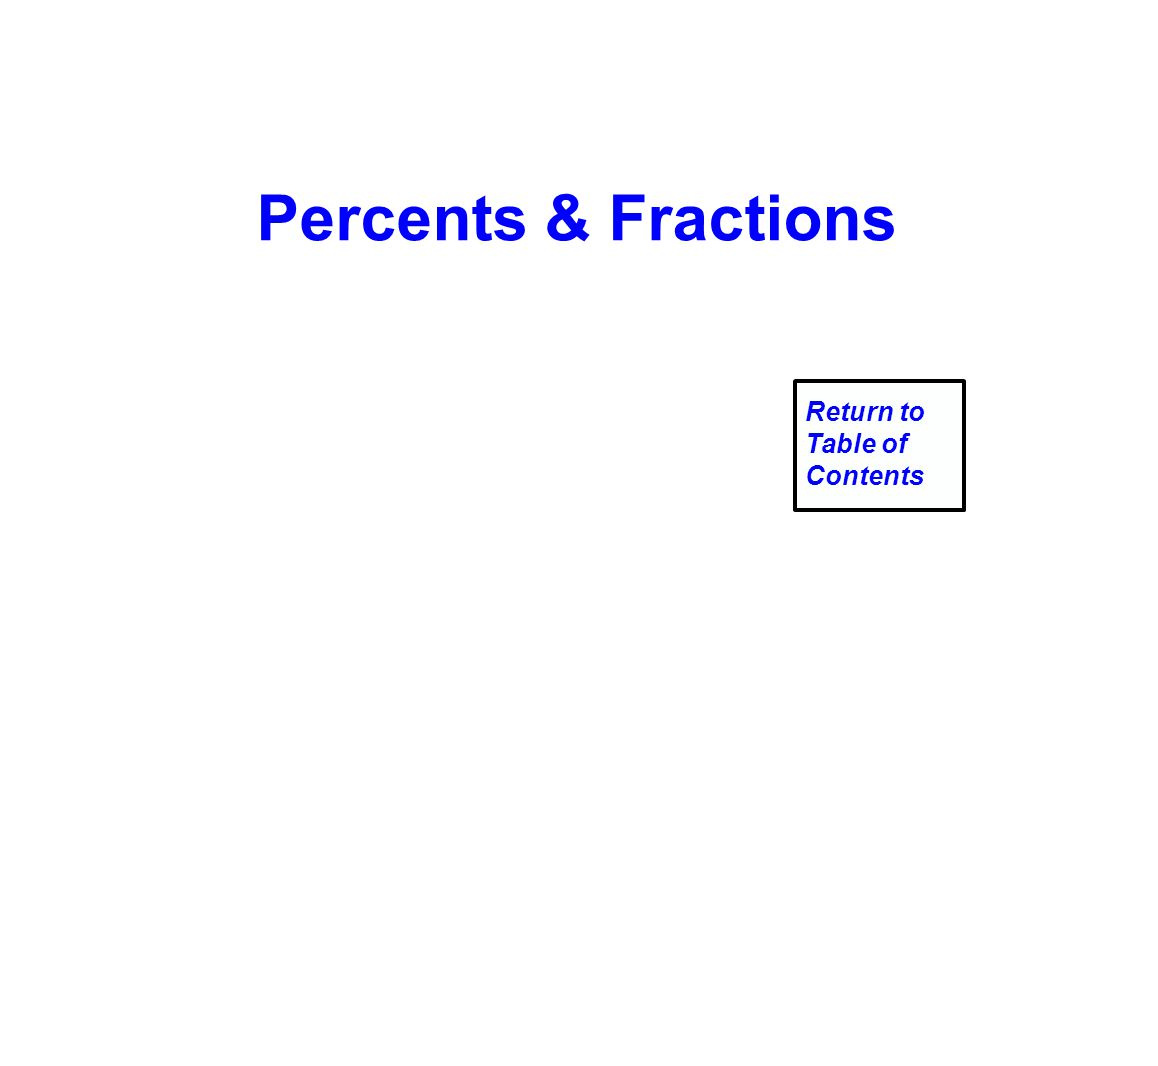 Percents & Fractions Return to Table of Contents